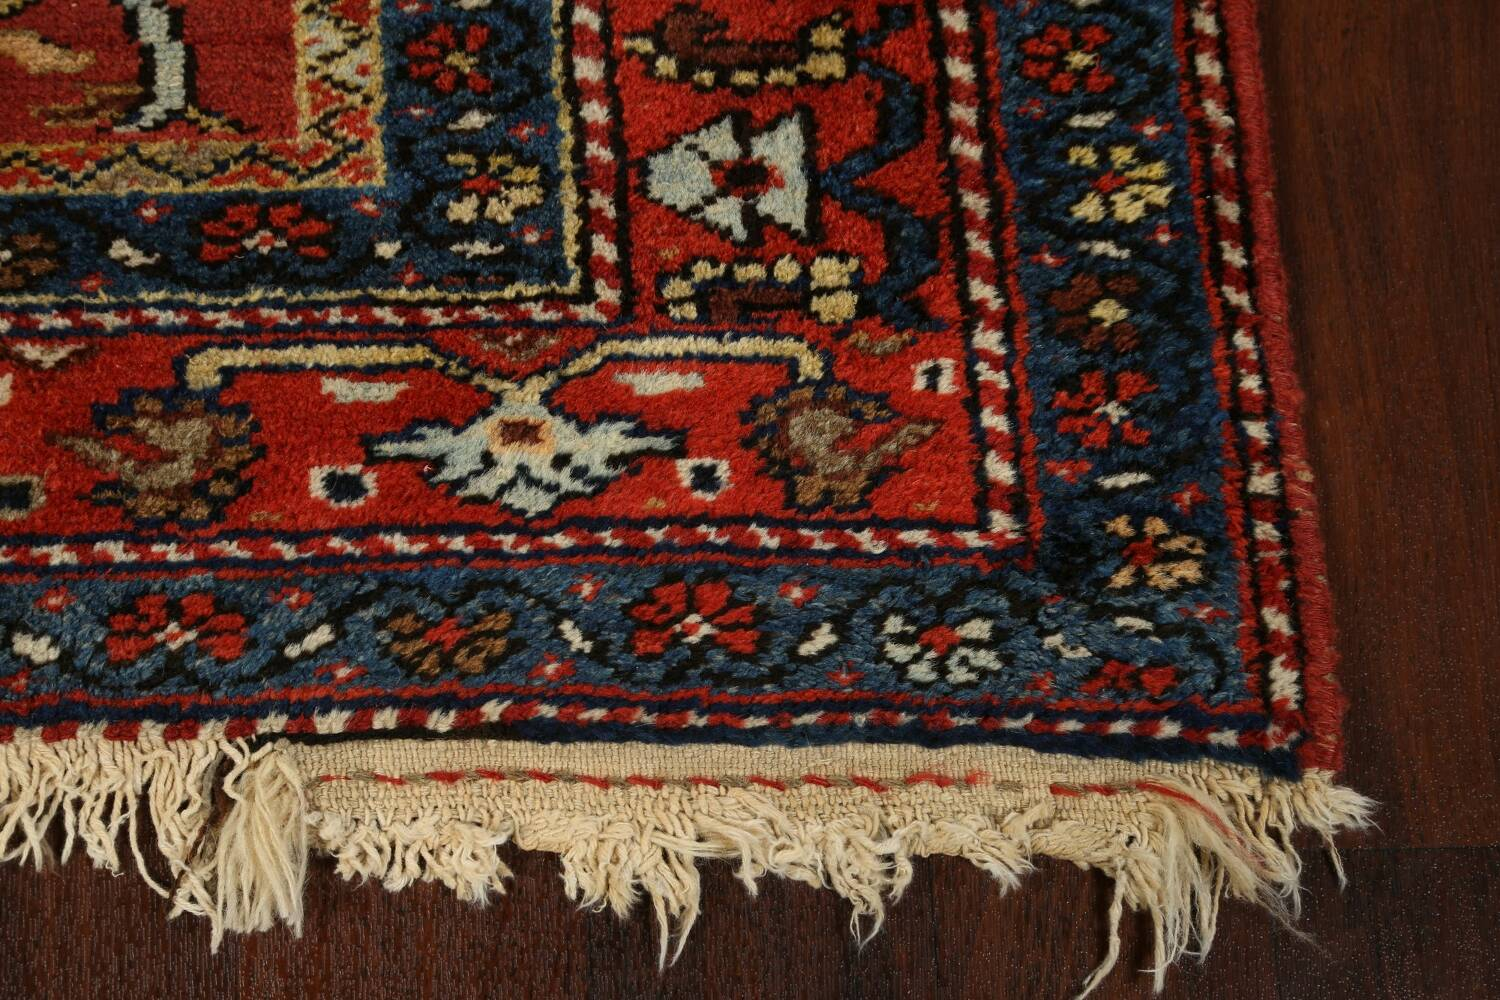 Pre-1900 Antique Vegetable Dye Sultanabad Persian Area Rug 5x10 image 5